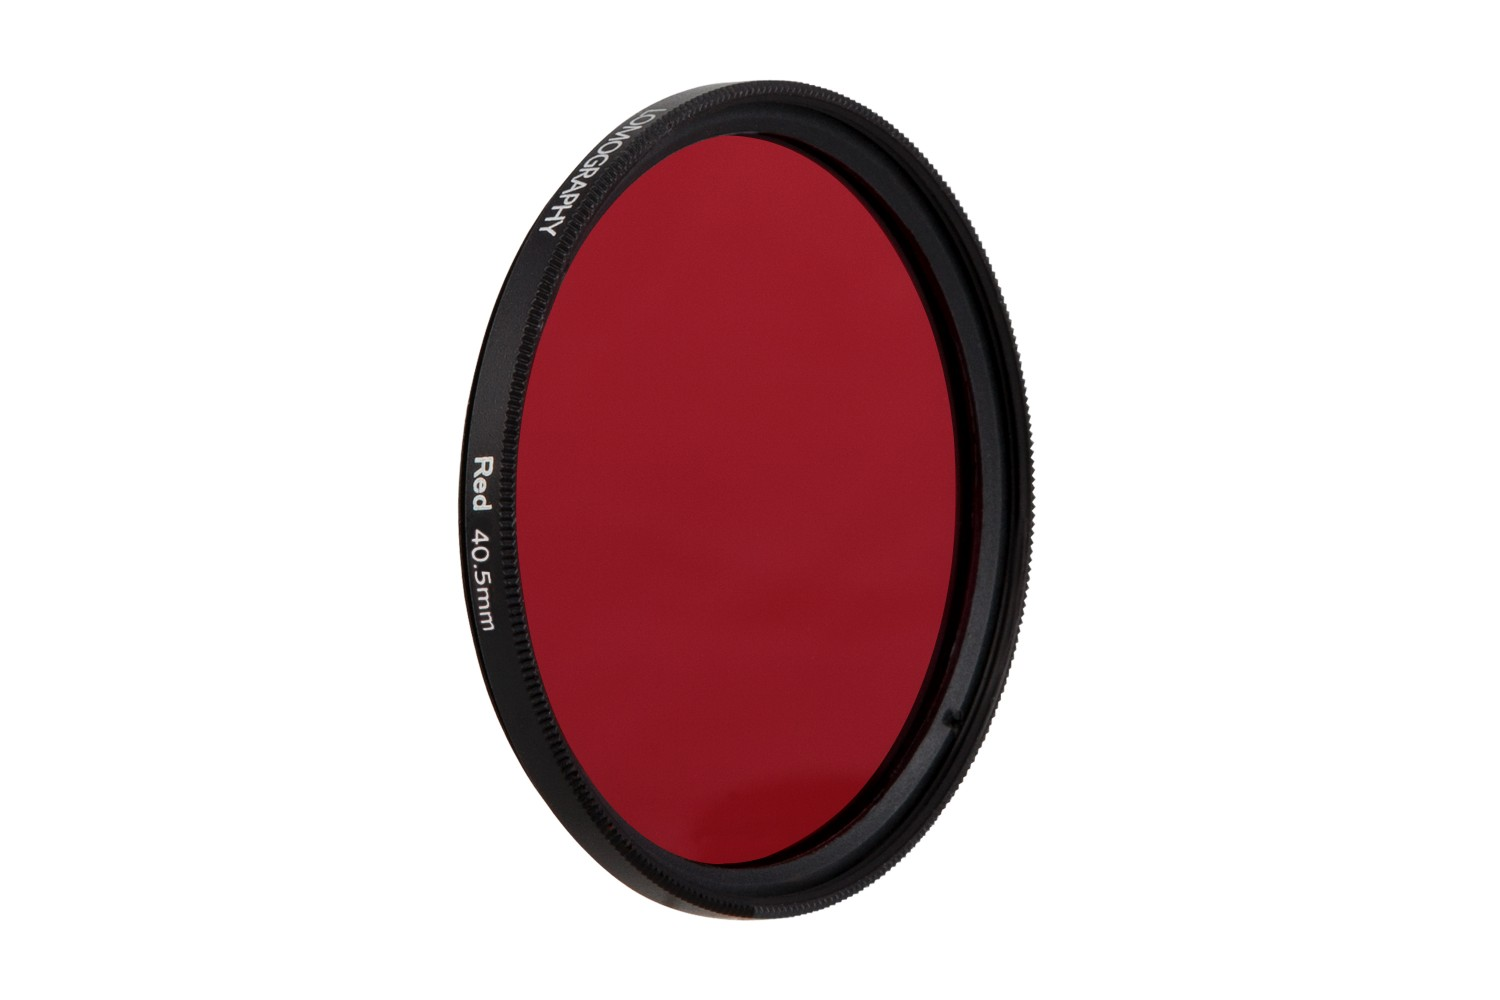 Lomography 40.5mm Lens Filter - Red